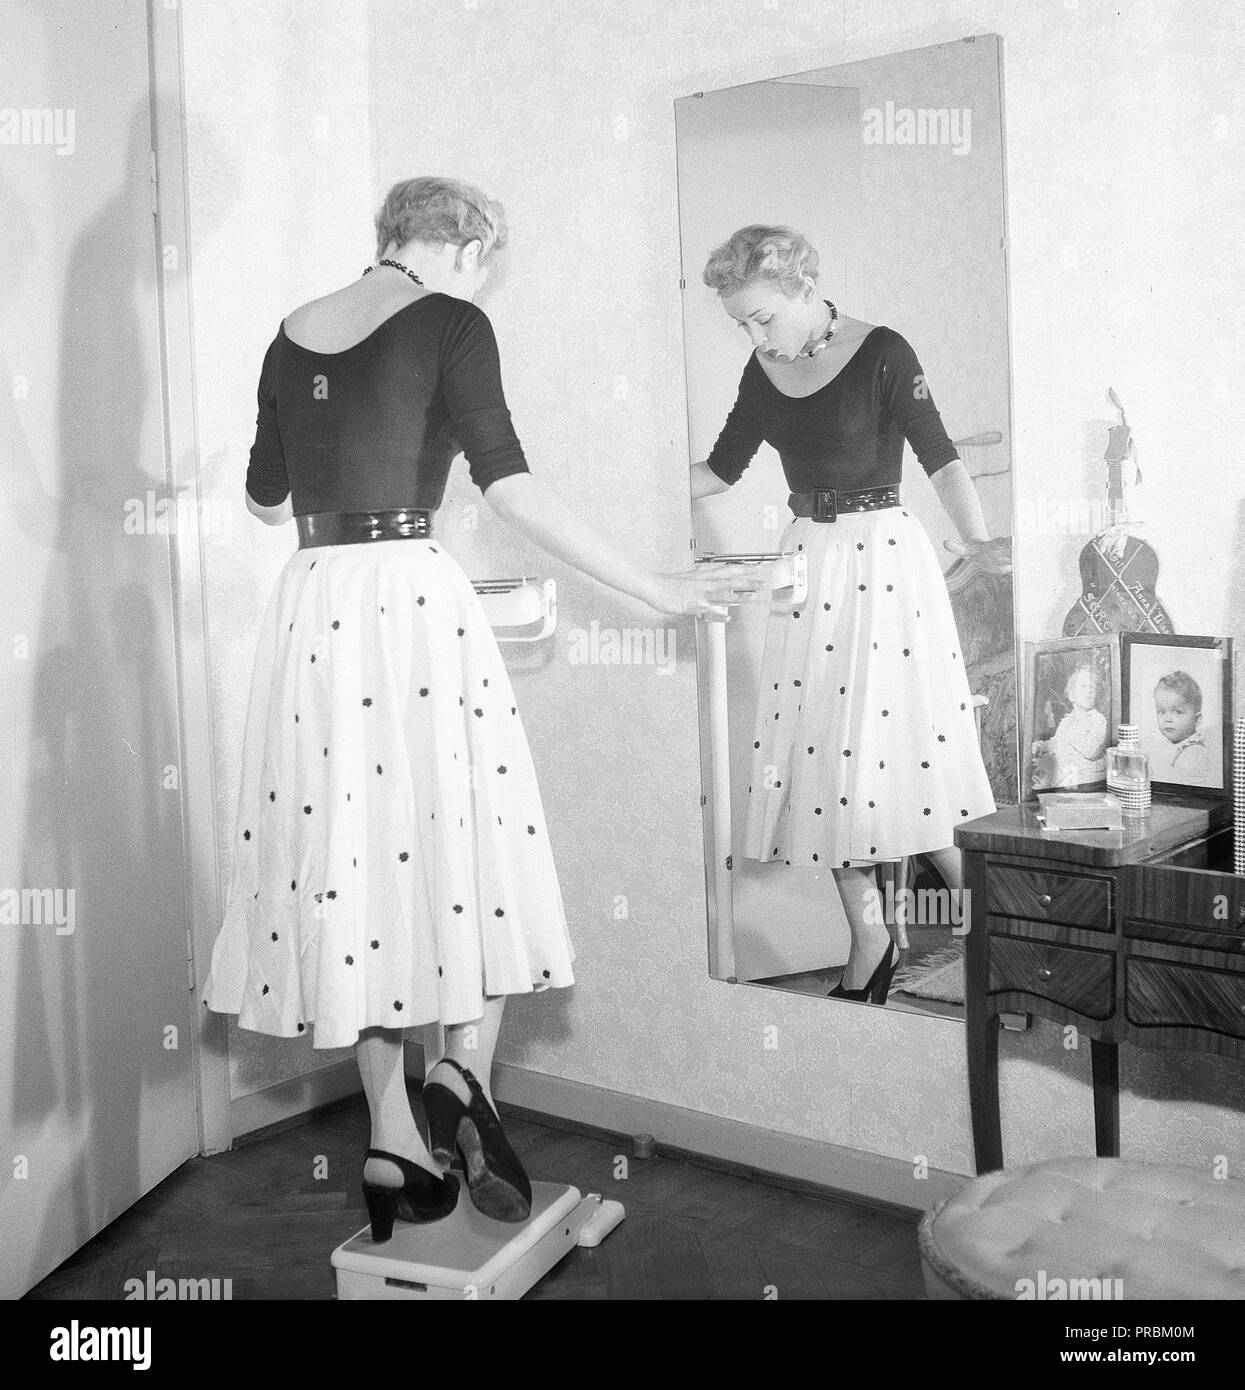 1950s fashion. A young woman is standing on one leg on the scale trying to be as light as possible. Pictures actress AnnaLisa Ericson, 1913-1911.  Sweden 1950s. Photo Kristoffersson ref BM74-10 - Stock Image